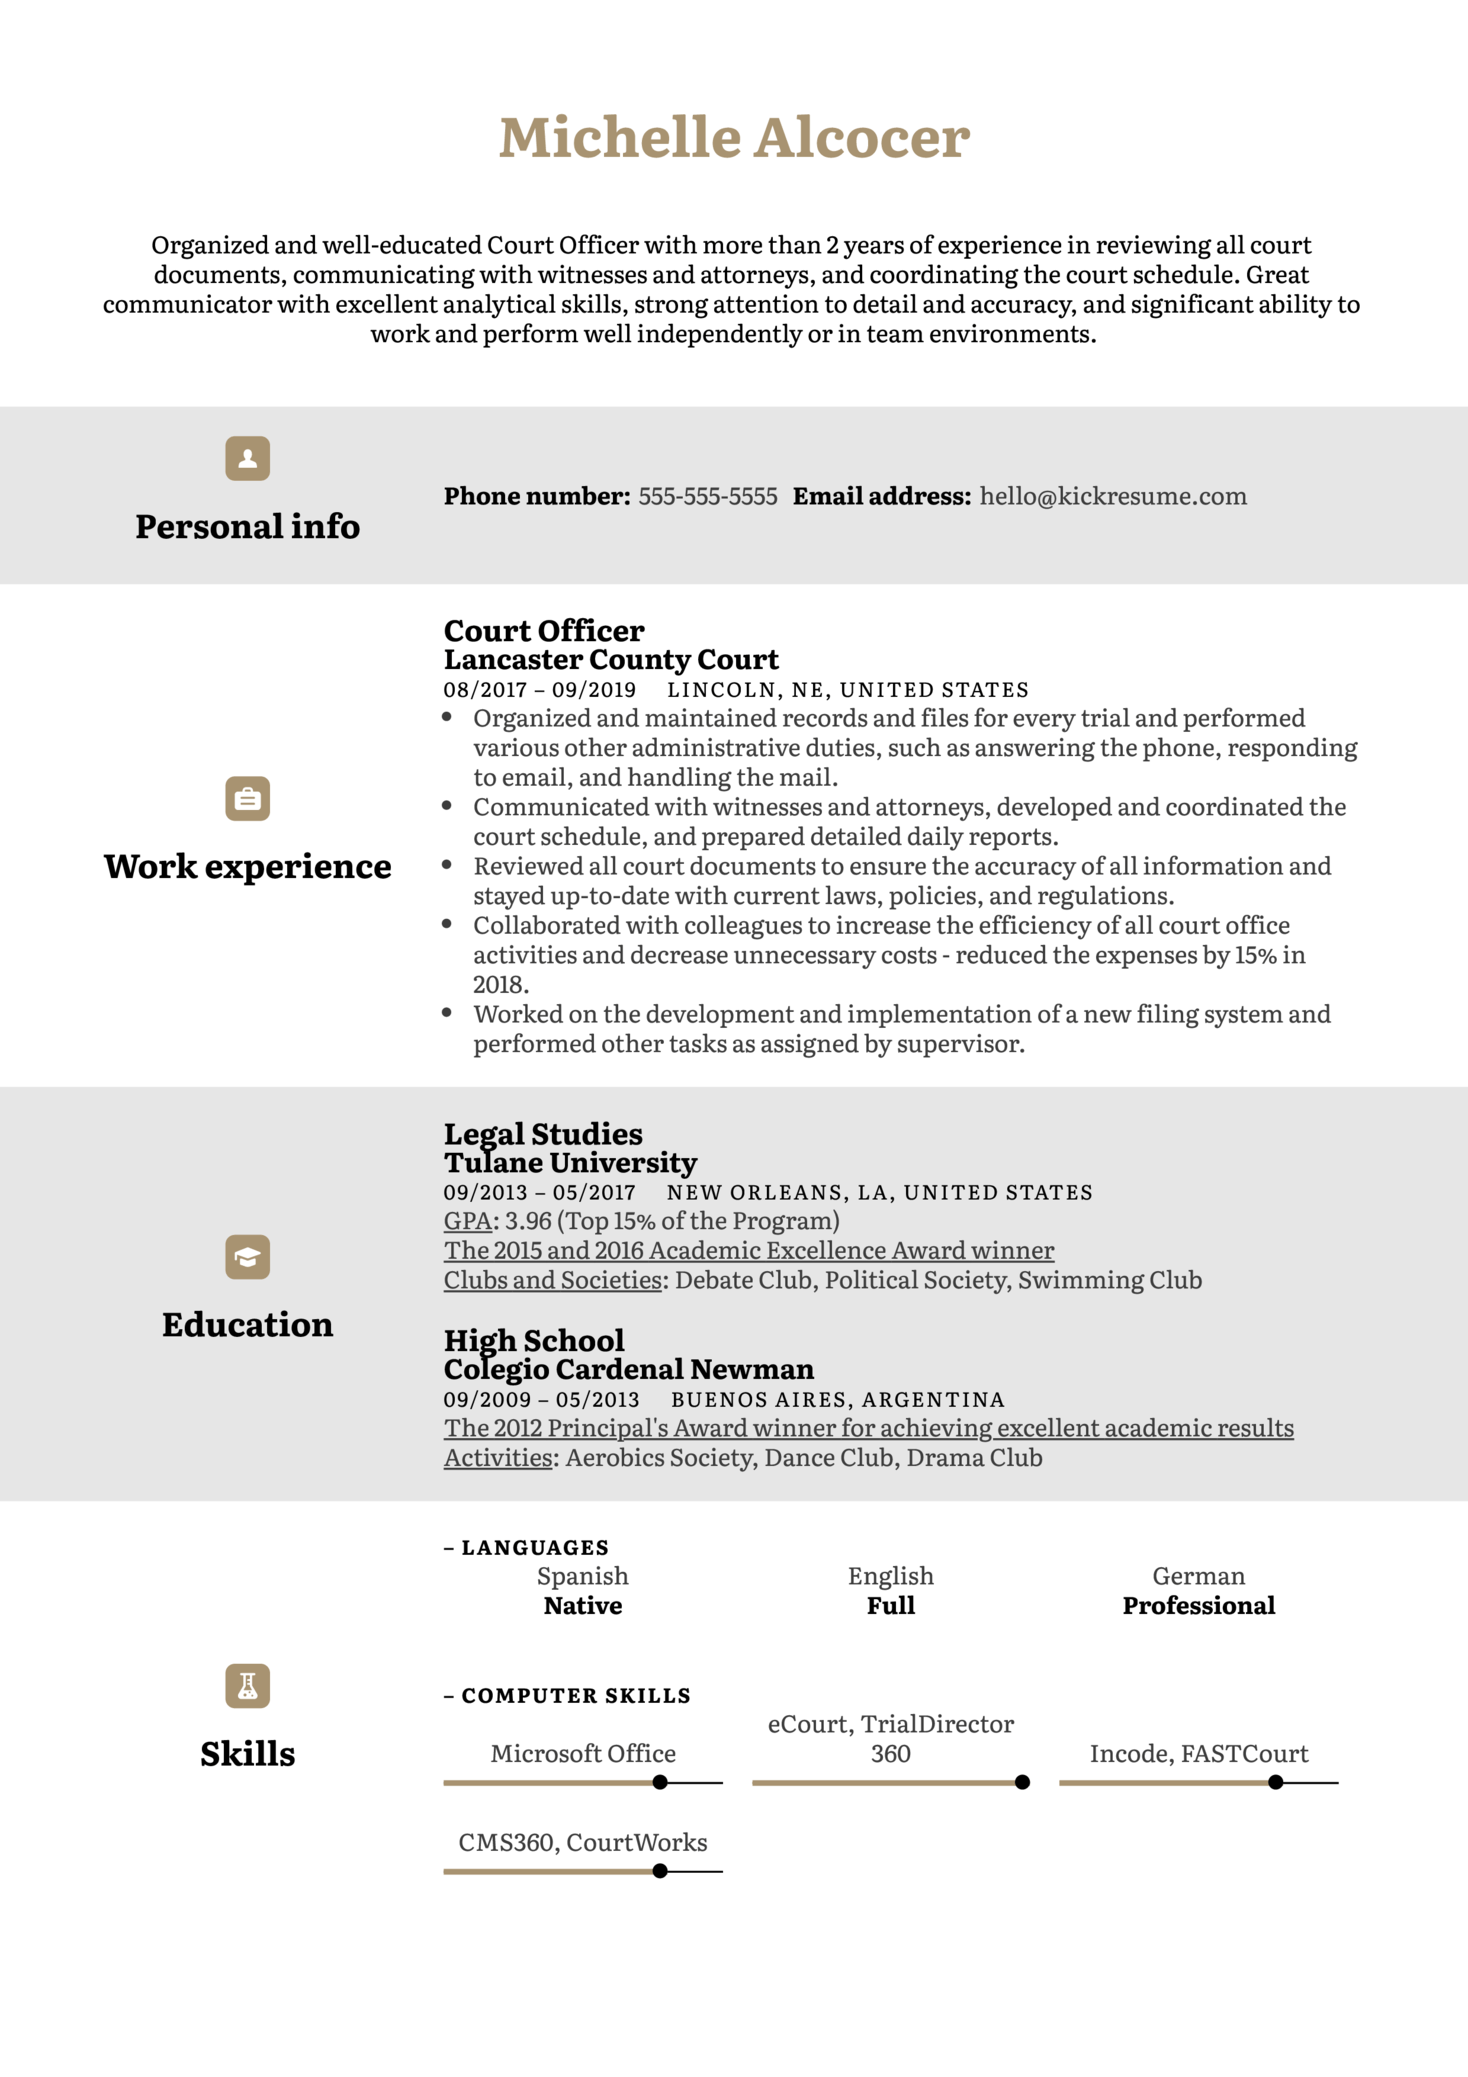 Court Officer Resume Example (Parte 1)